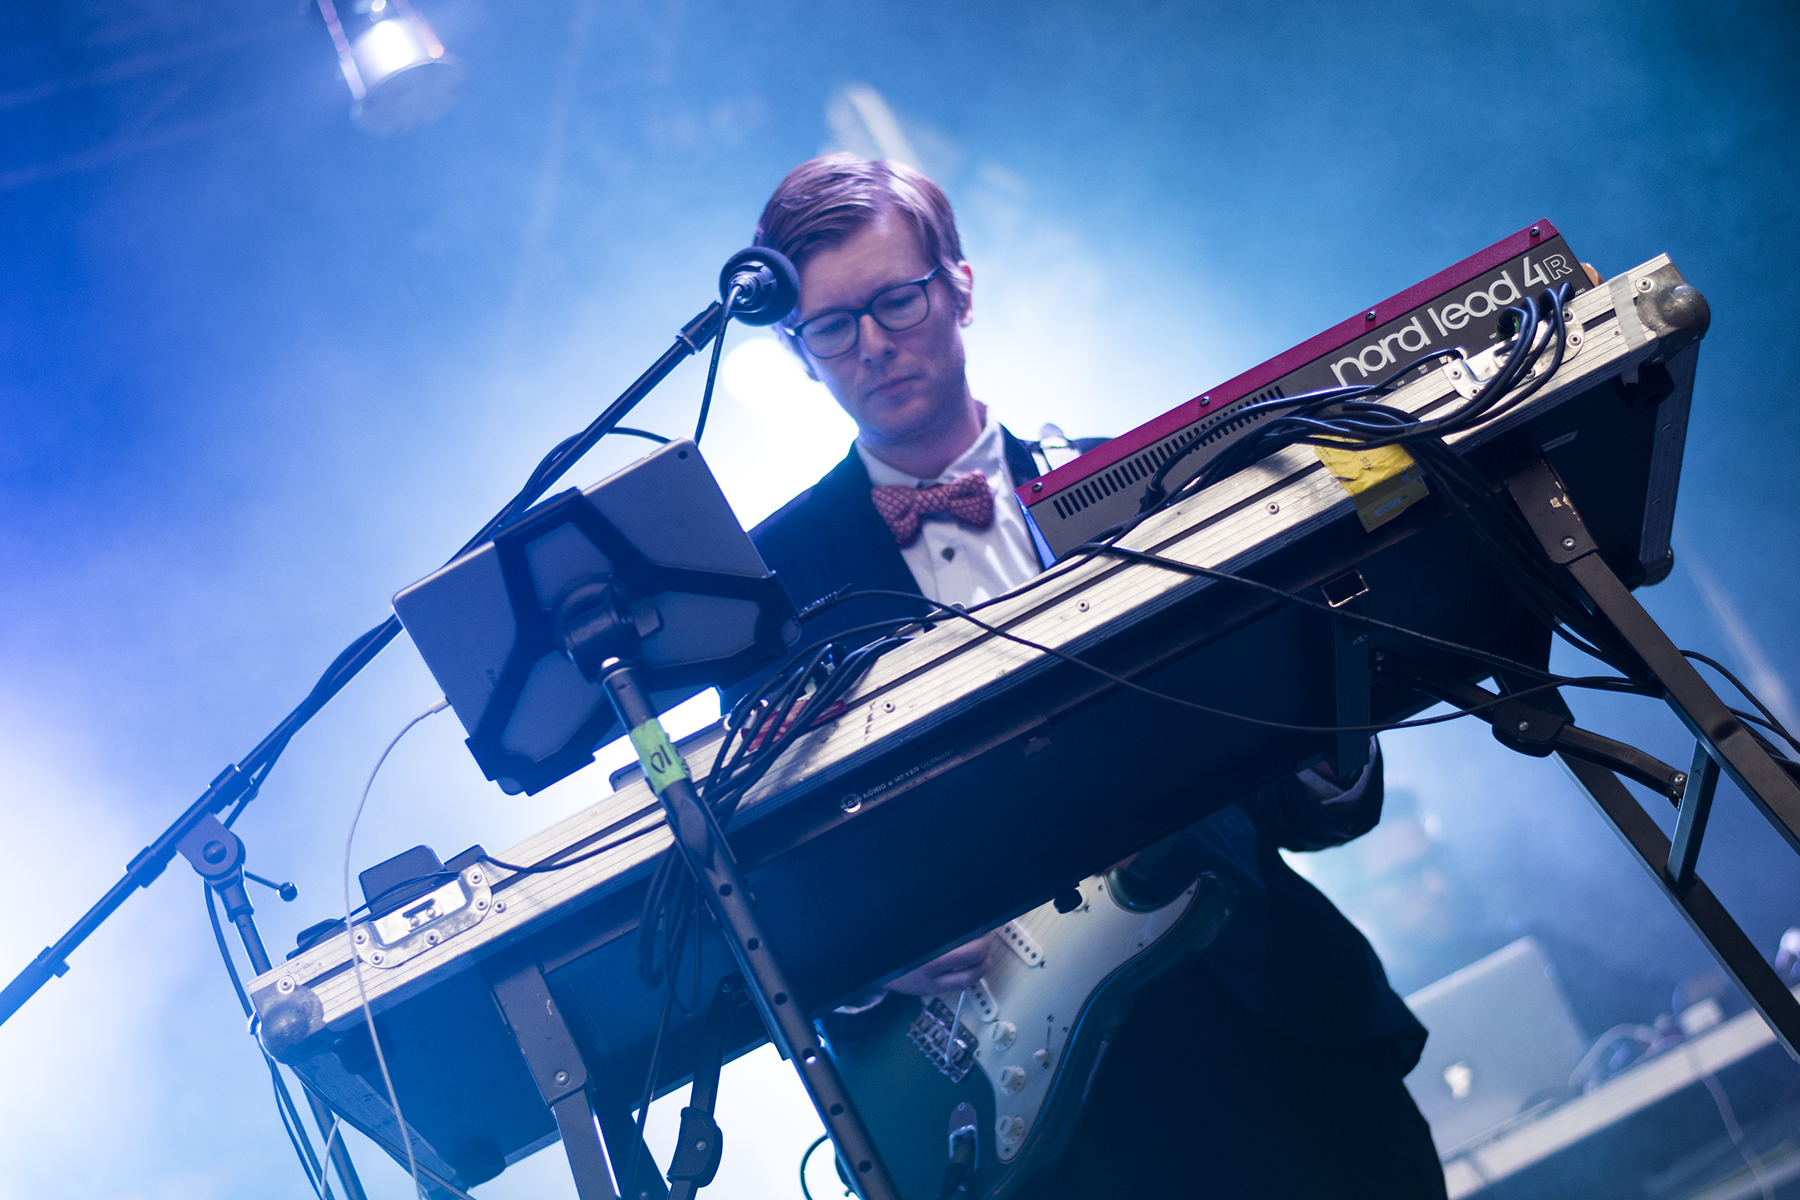 Public Service Broadcasting at Caerphilly Castle